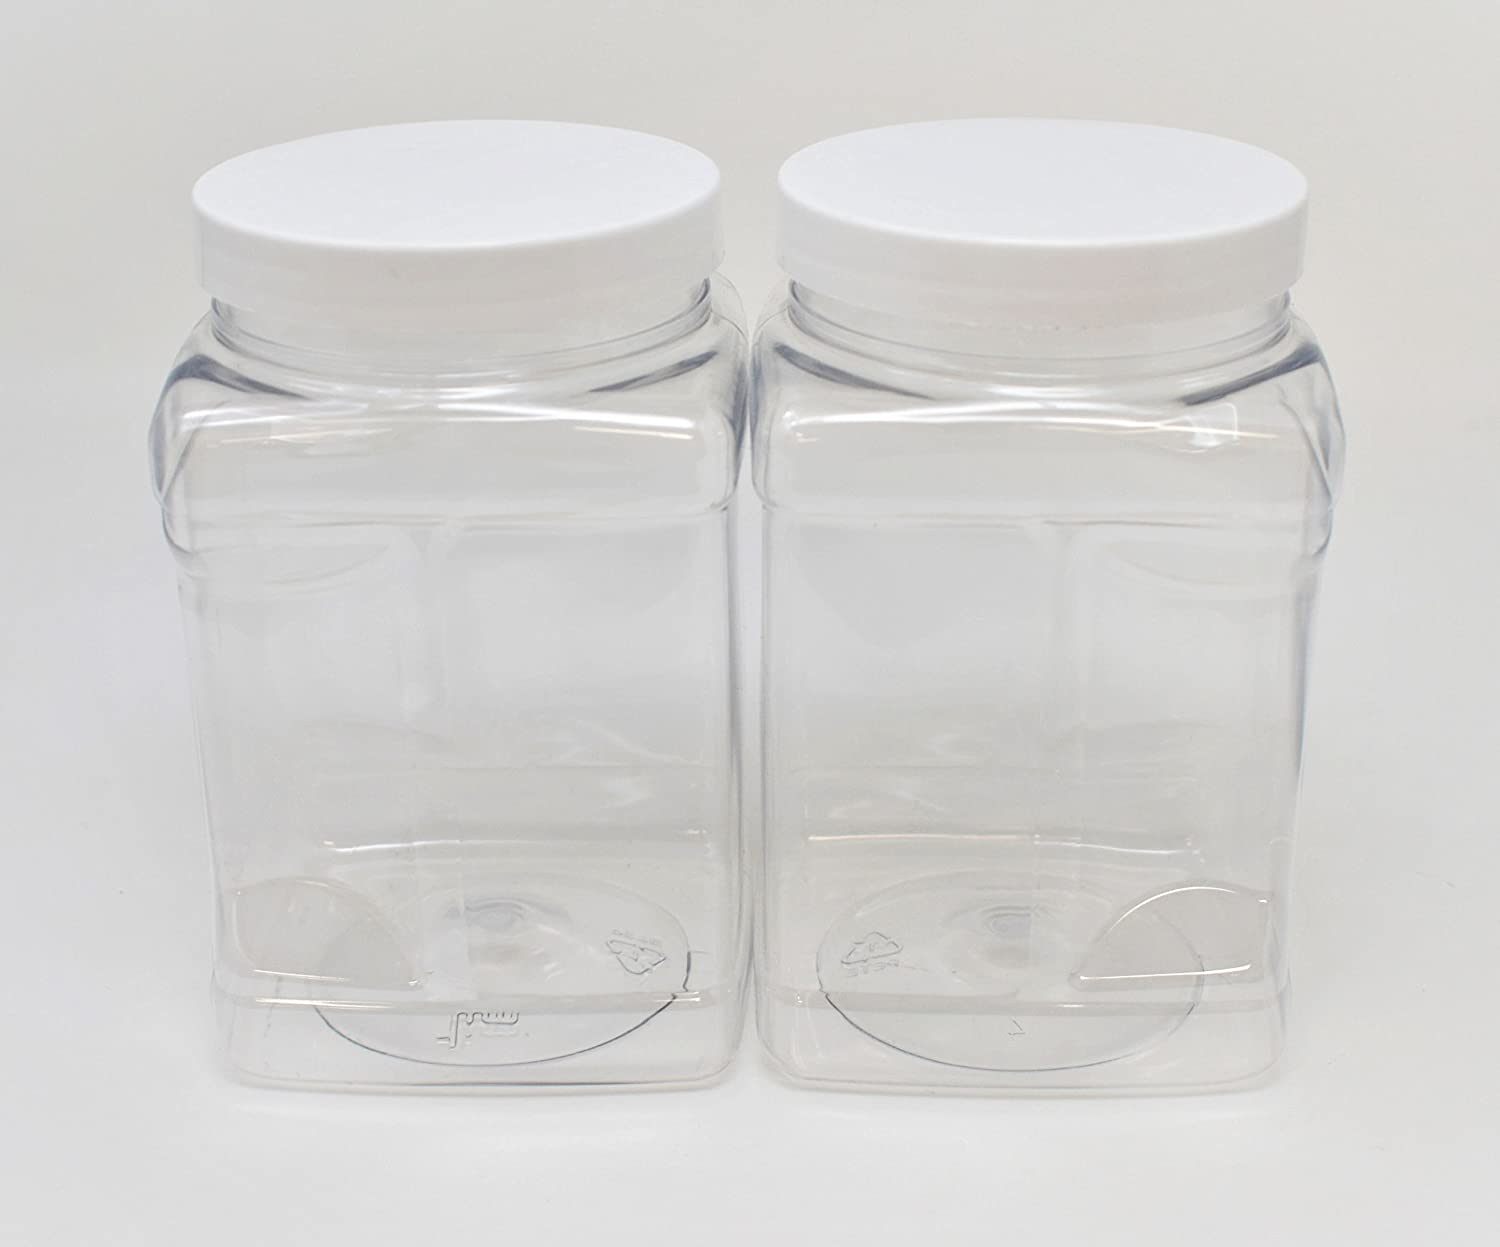 7c26cf1e3c7b SALUSWARE Plastic Clear Jars Bottles Containers - PACK OF 2, 32 Oz Airtight  Leak-proof Lids White Caps - Perfect for Kitchen, Pantry, Organizer - Food  ...